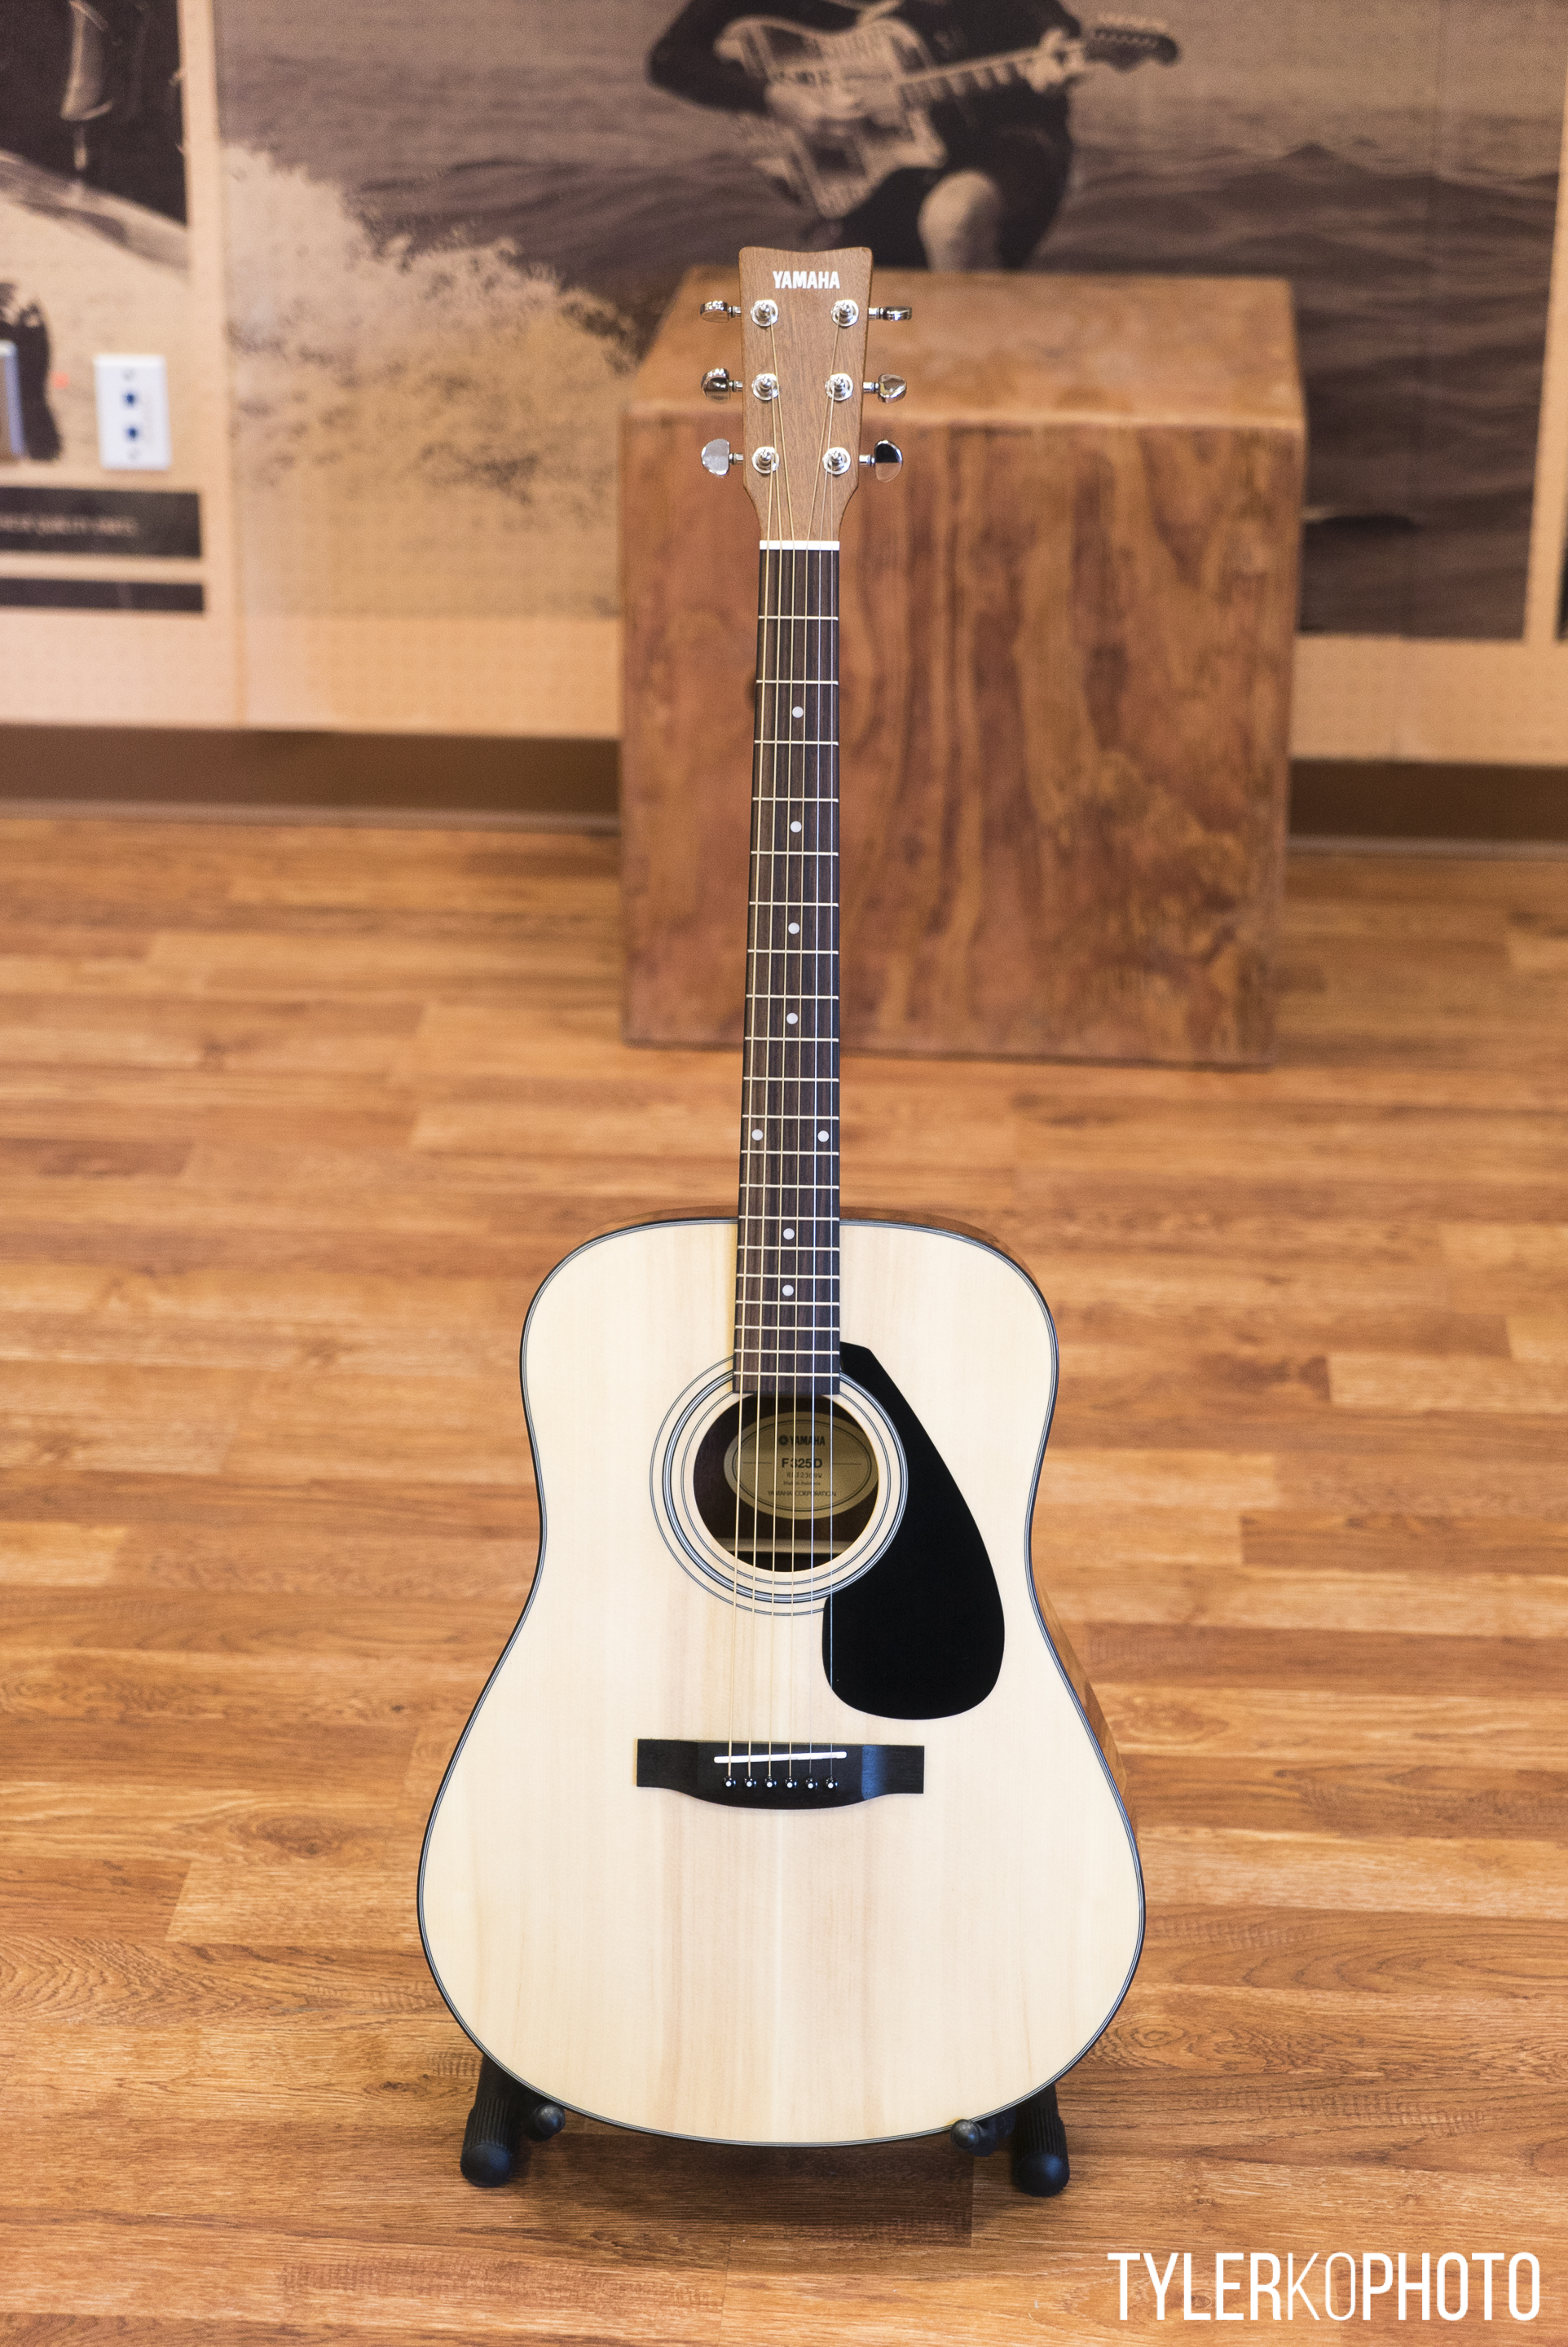 Yamaha f325d acoustic guitar picclick uk for Yamaha classic guitar